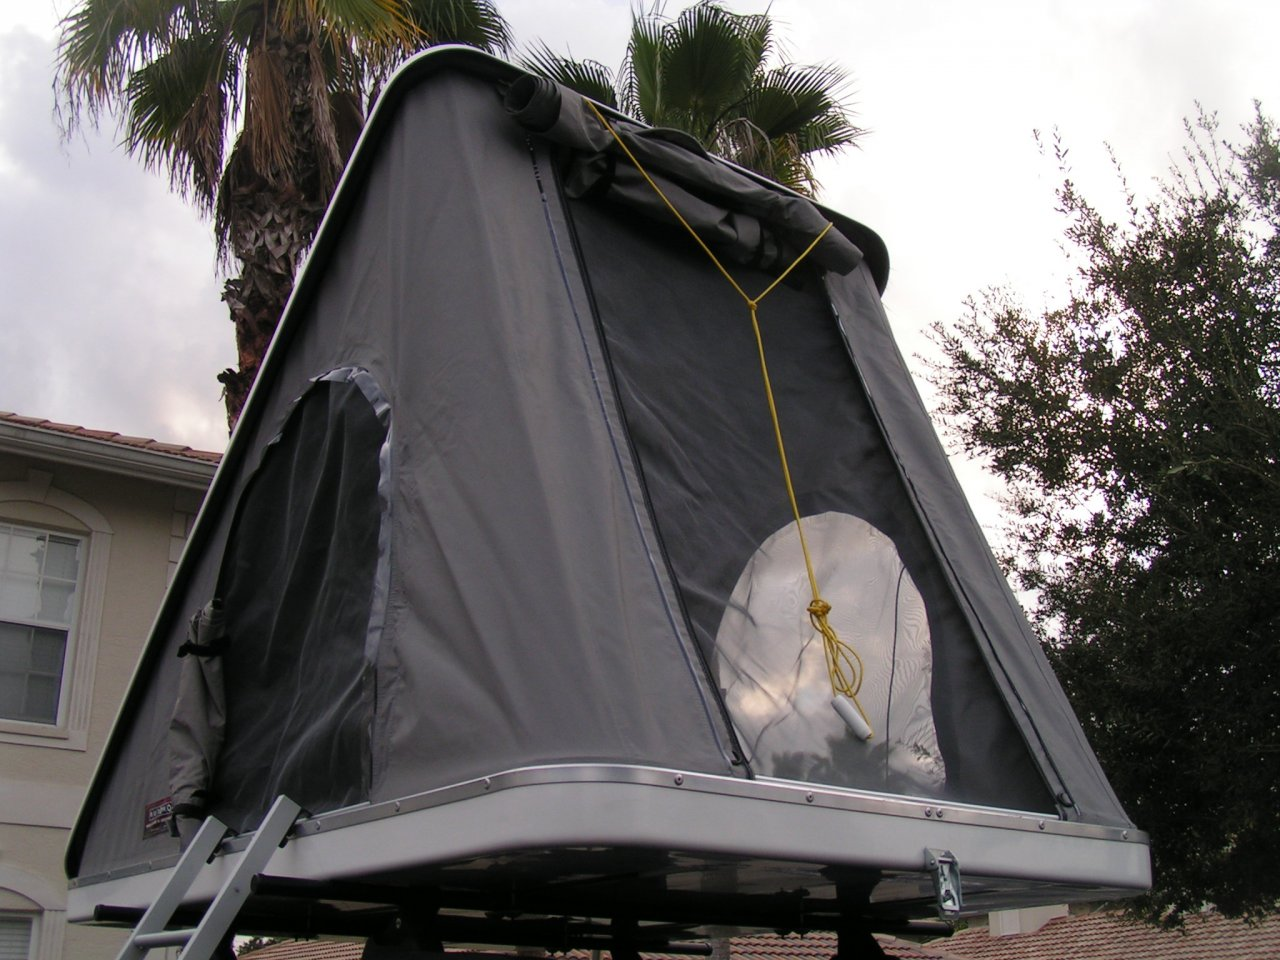 Fj60 Roof Tents : For sale columbus variant hard shell roof top tent